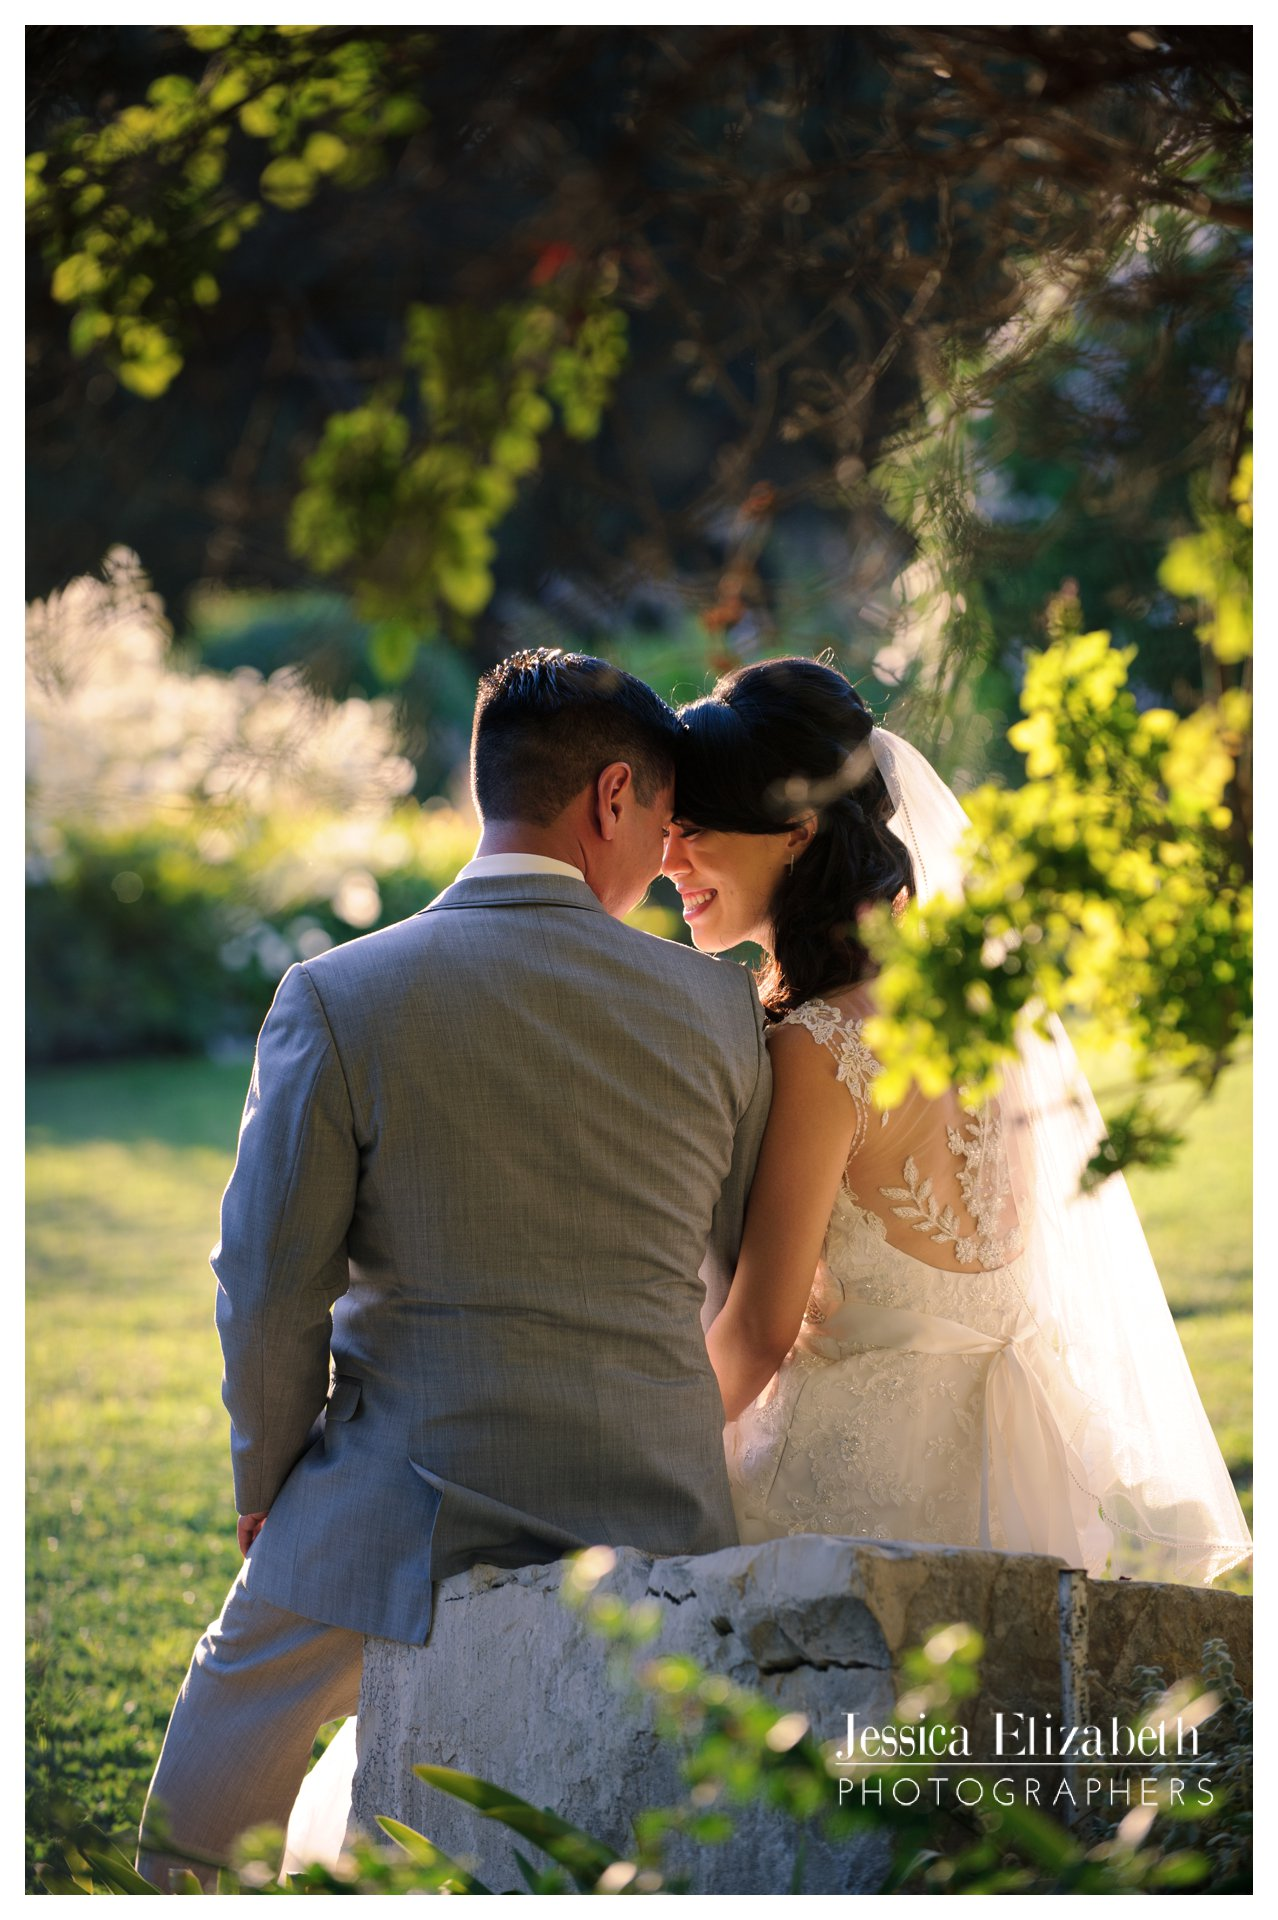 28-South-Coast-Botanic-Garden-Palos-Verdes-Wedding-Photography-by-Jessica-Elizabeth1.jpg